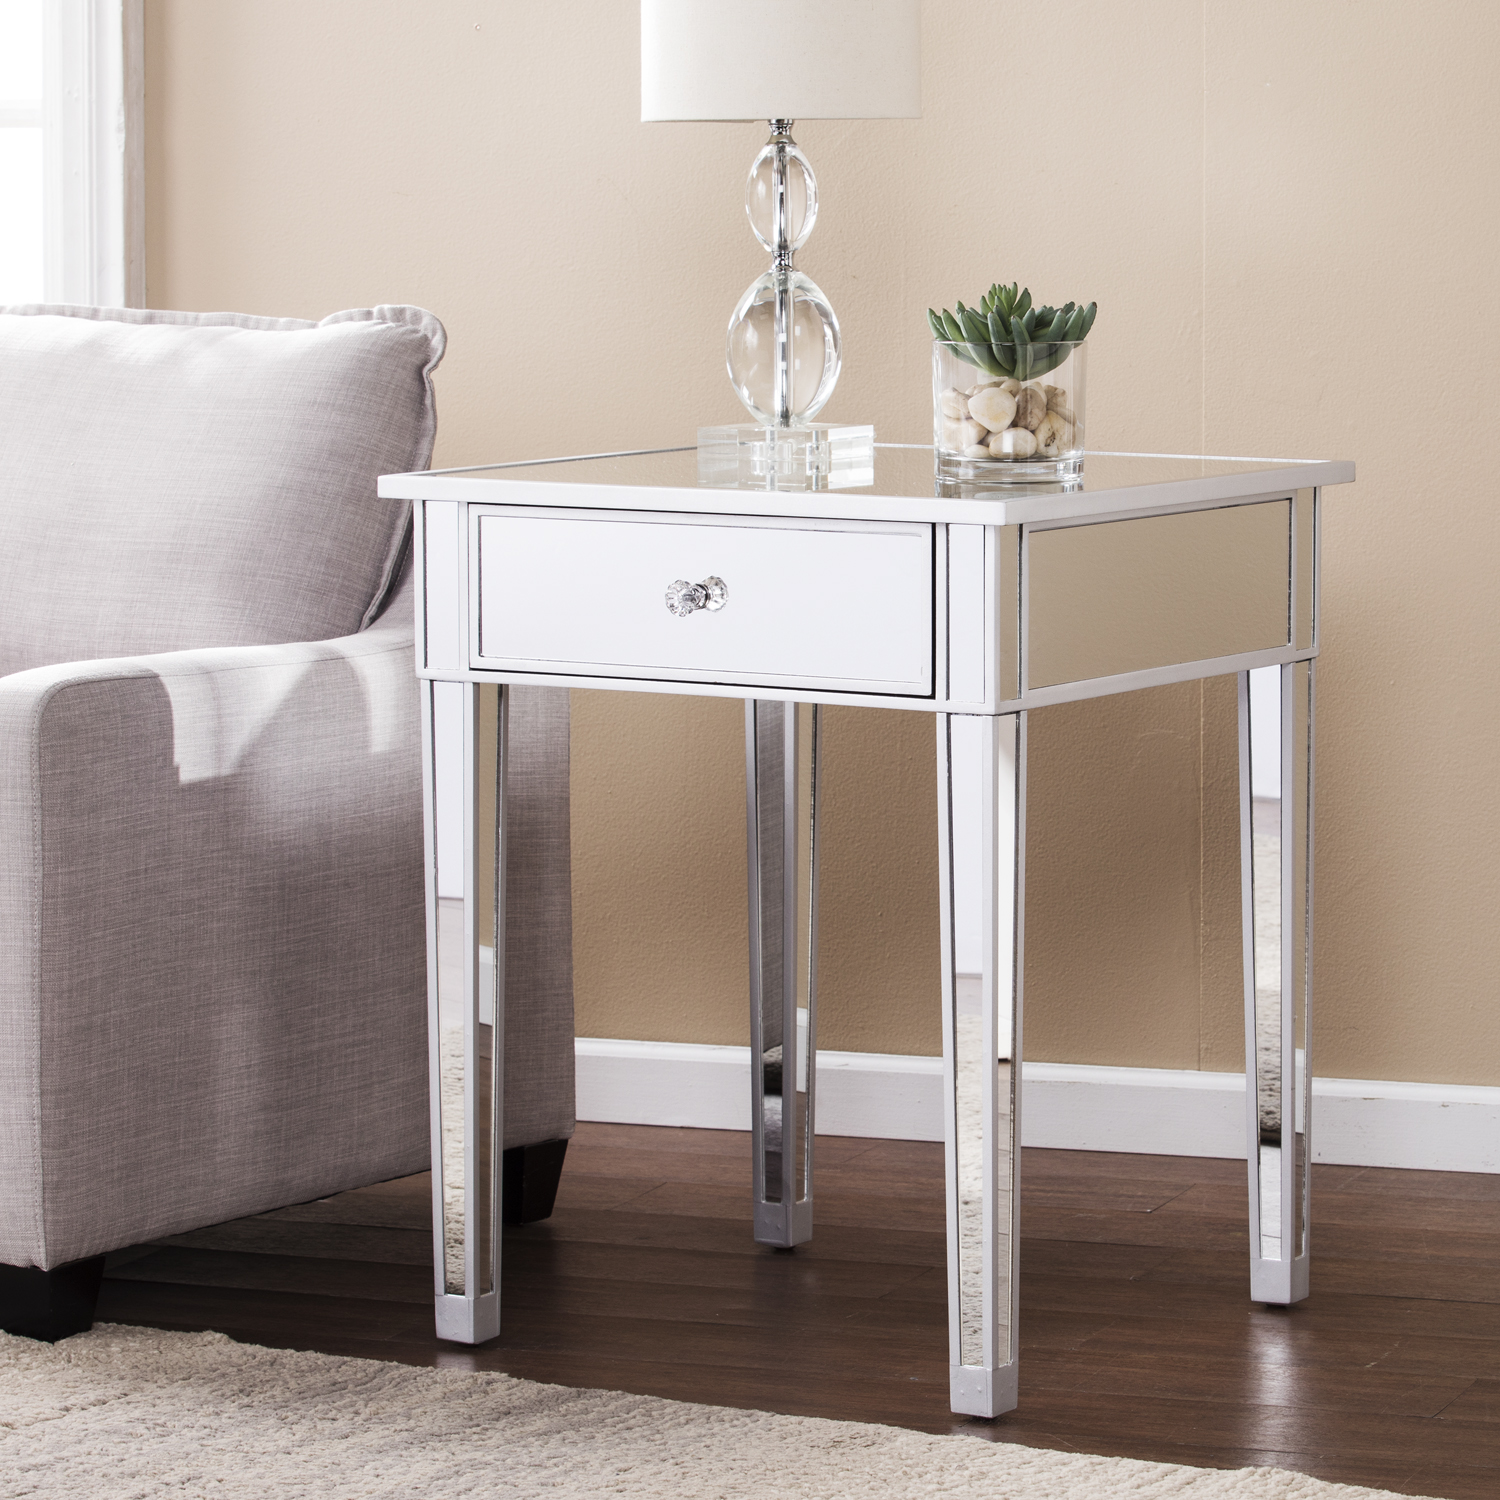 mirage mirrored accent table with drawer rustic living room end tables metal folding side high legs ikea garden chairs narrow console shelves pier outdoor furniture magnussen home